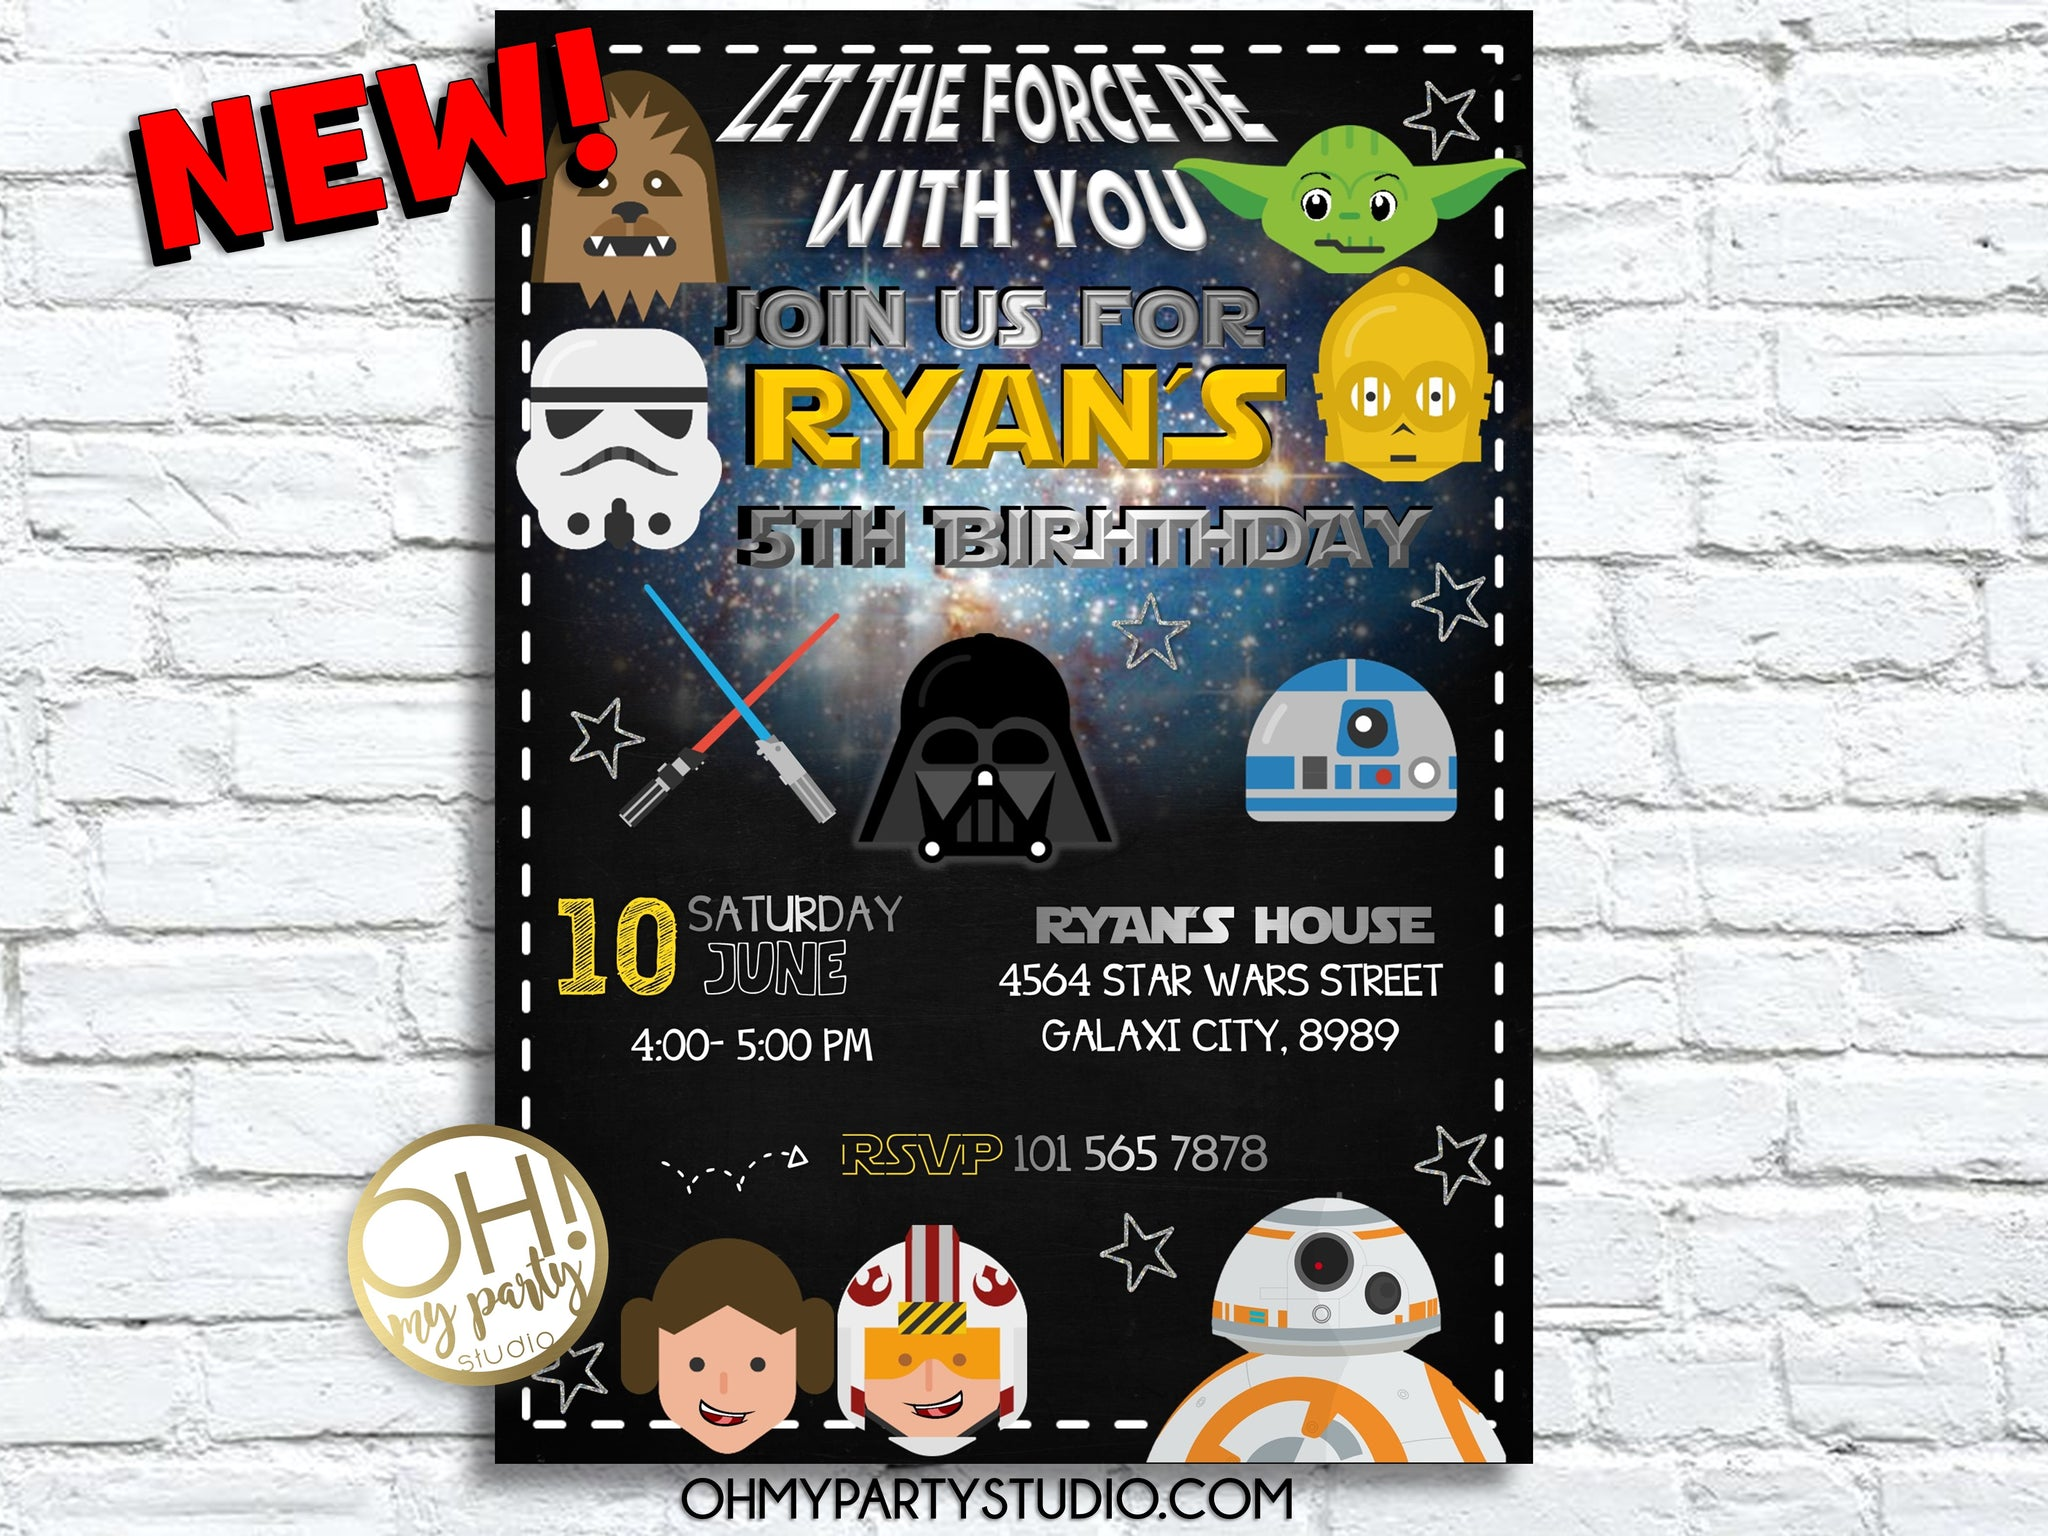 Star Wars Invitation, Star Wars Birthday, Star Wars, Star Wars Printable, Star Wars Card, Star Wars Invite Party, Darth Vader Invite, star wars birthday party, star wars birthday invitation, star wars invitation digital, star wars invite, star wars party ideas, star wars party decoration